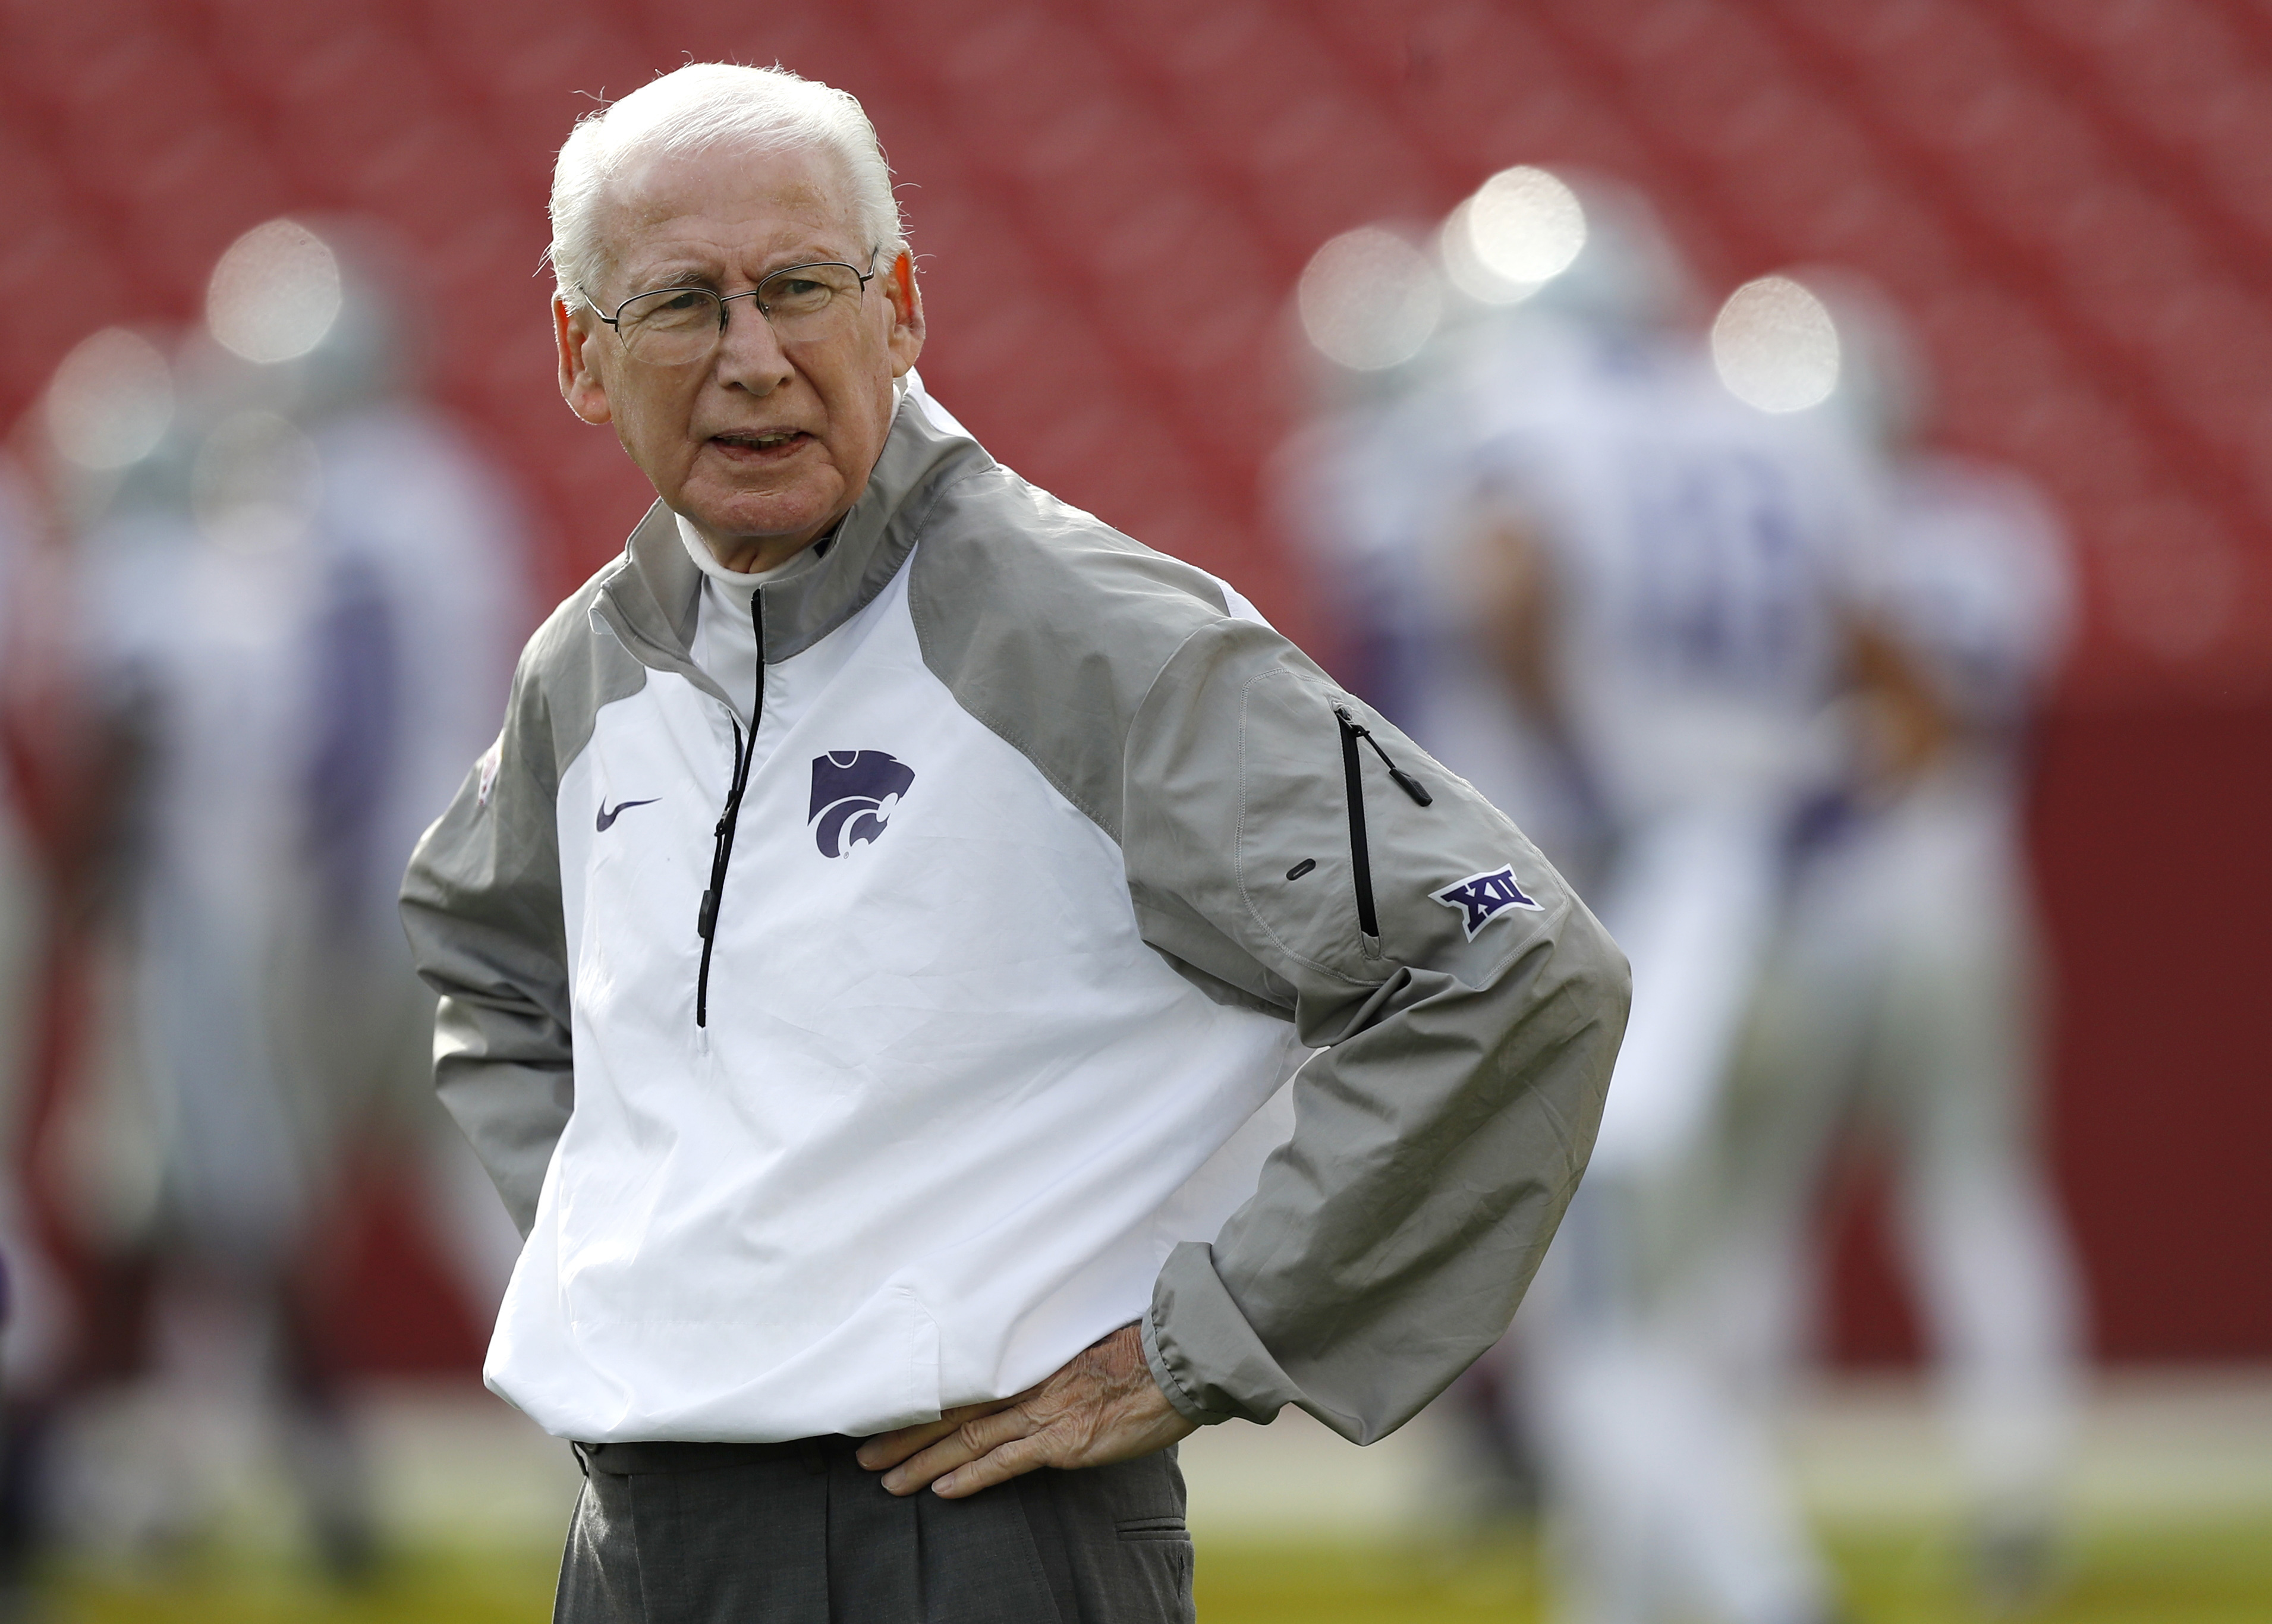 FILE - In this Oct. 29, 2016, file photo, Kansas State coach Bill Snyder stands on the field before the team's NCAA college football game against Iowa State in Ames, Iowa. Snyder is going for his 200th victory as Kansas State coach when its host Kansas in